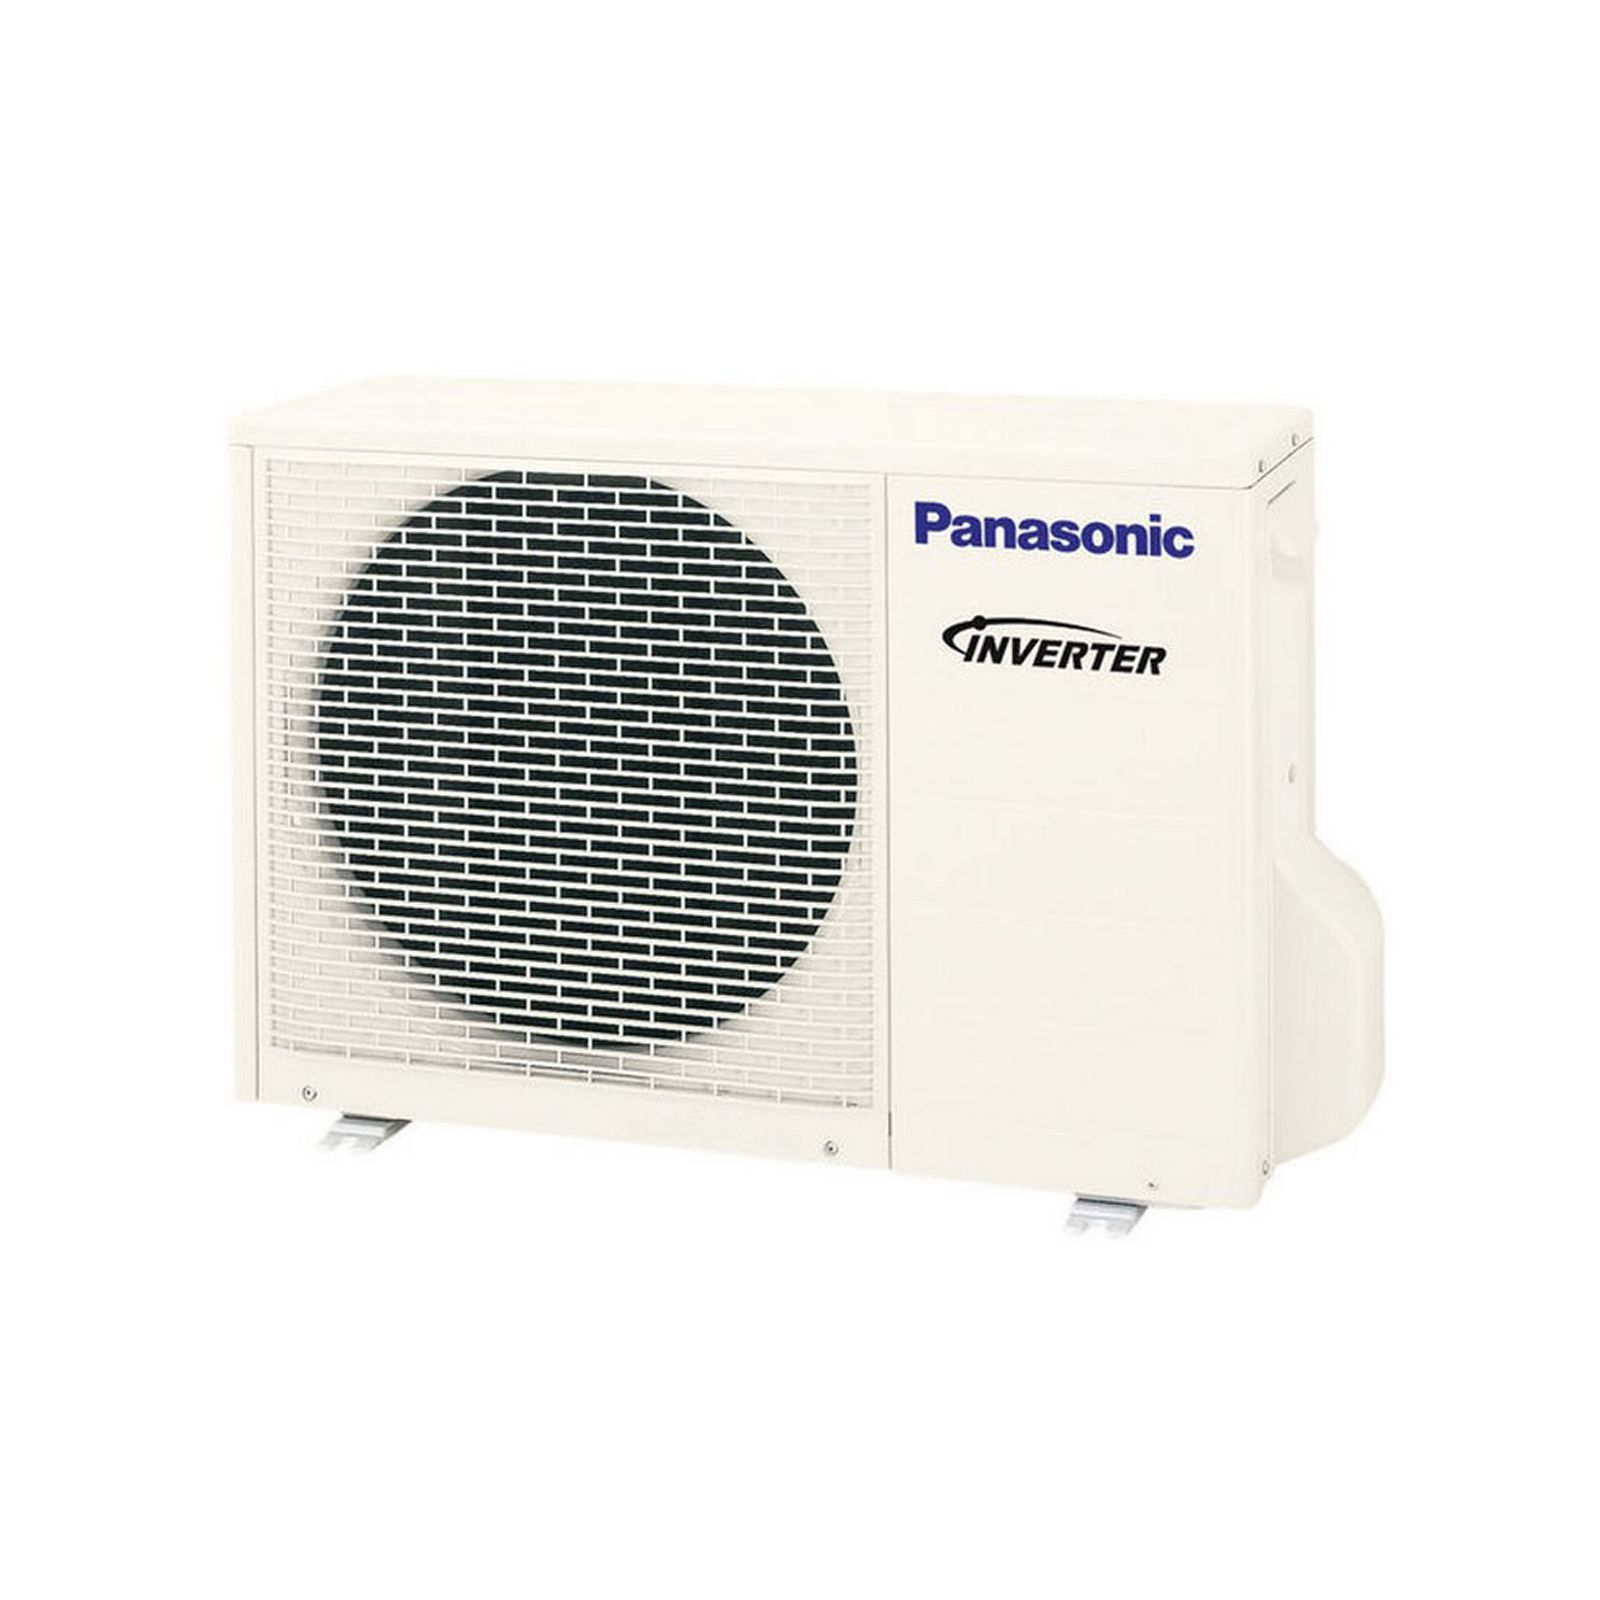 Panasonic CS-RE9SKUA - 9K BTU/H Indoor Wall Mount Heat Pump, 16 SEER, 208-230/1/60